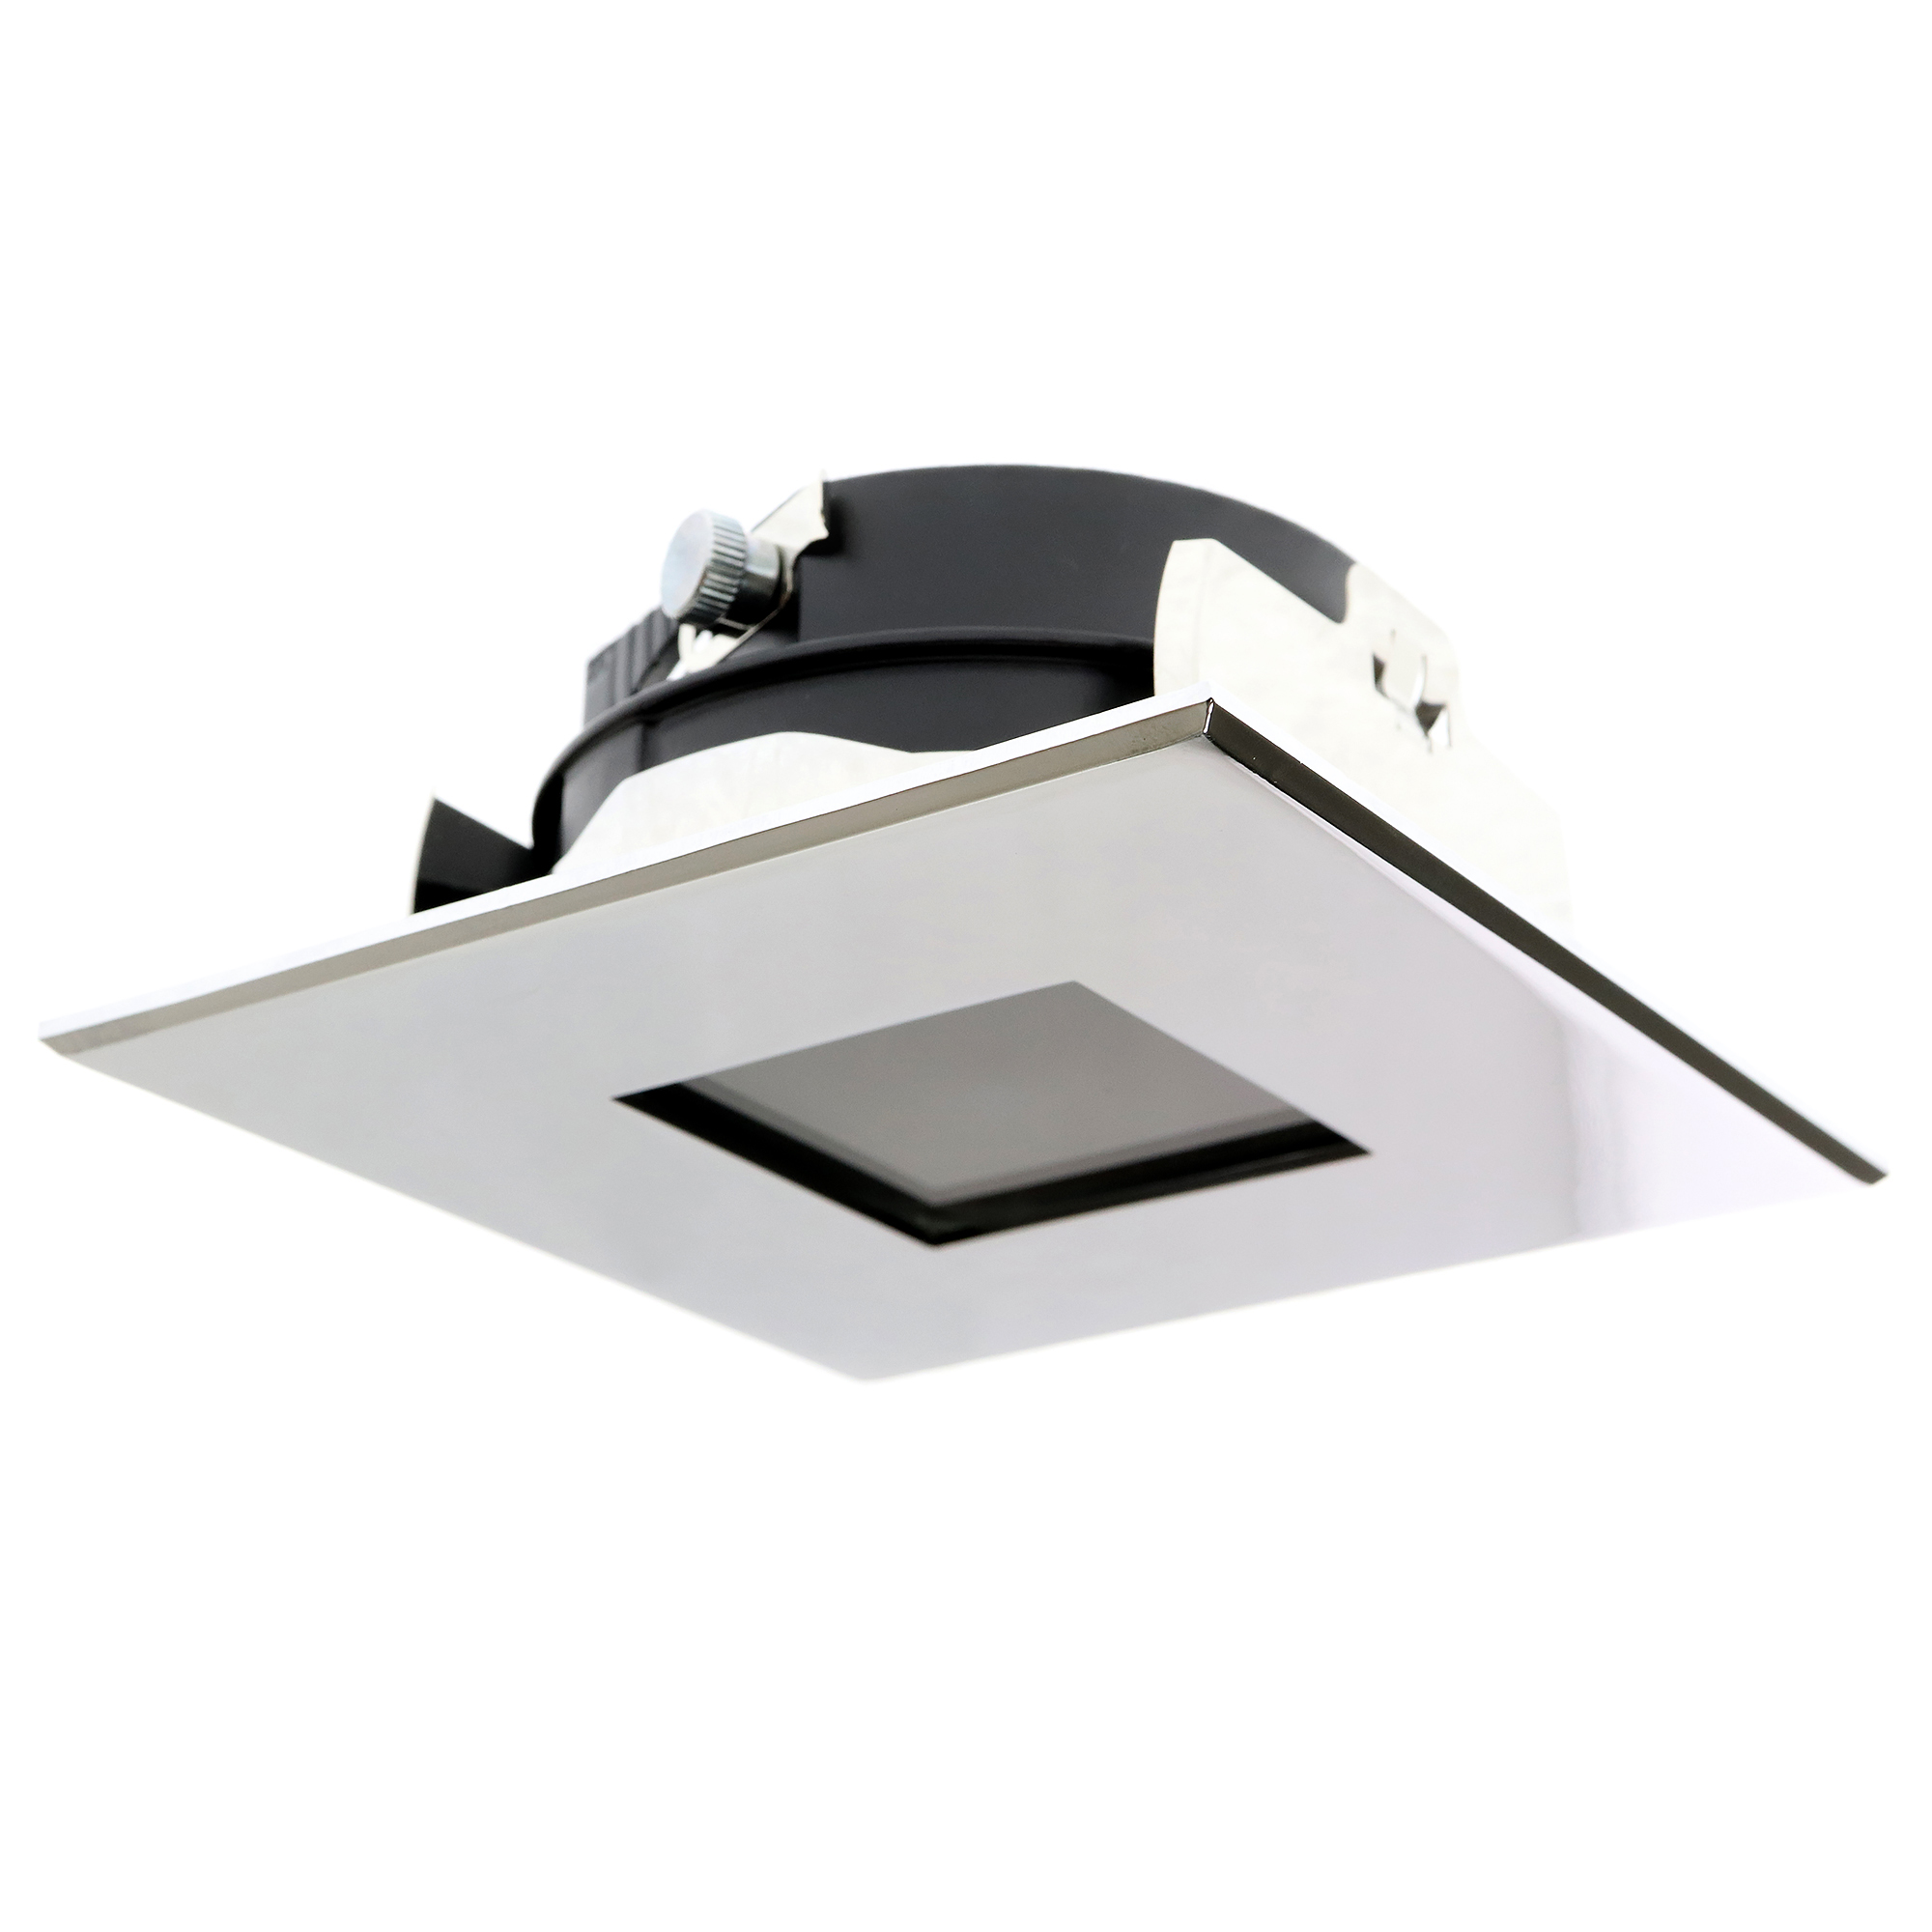 LIGHTOLIER 347CMX 20 LYTEPOINTS SQUARE CHROME RECESSED